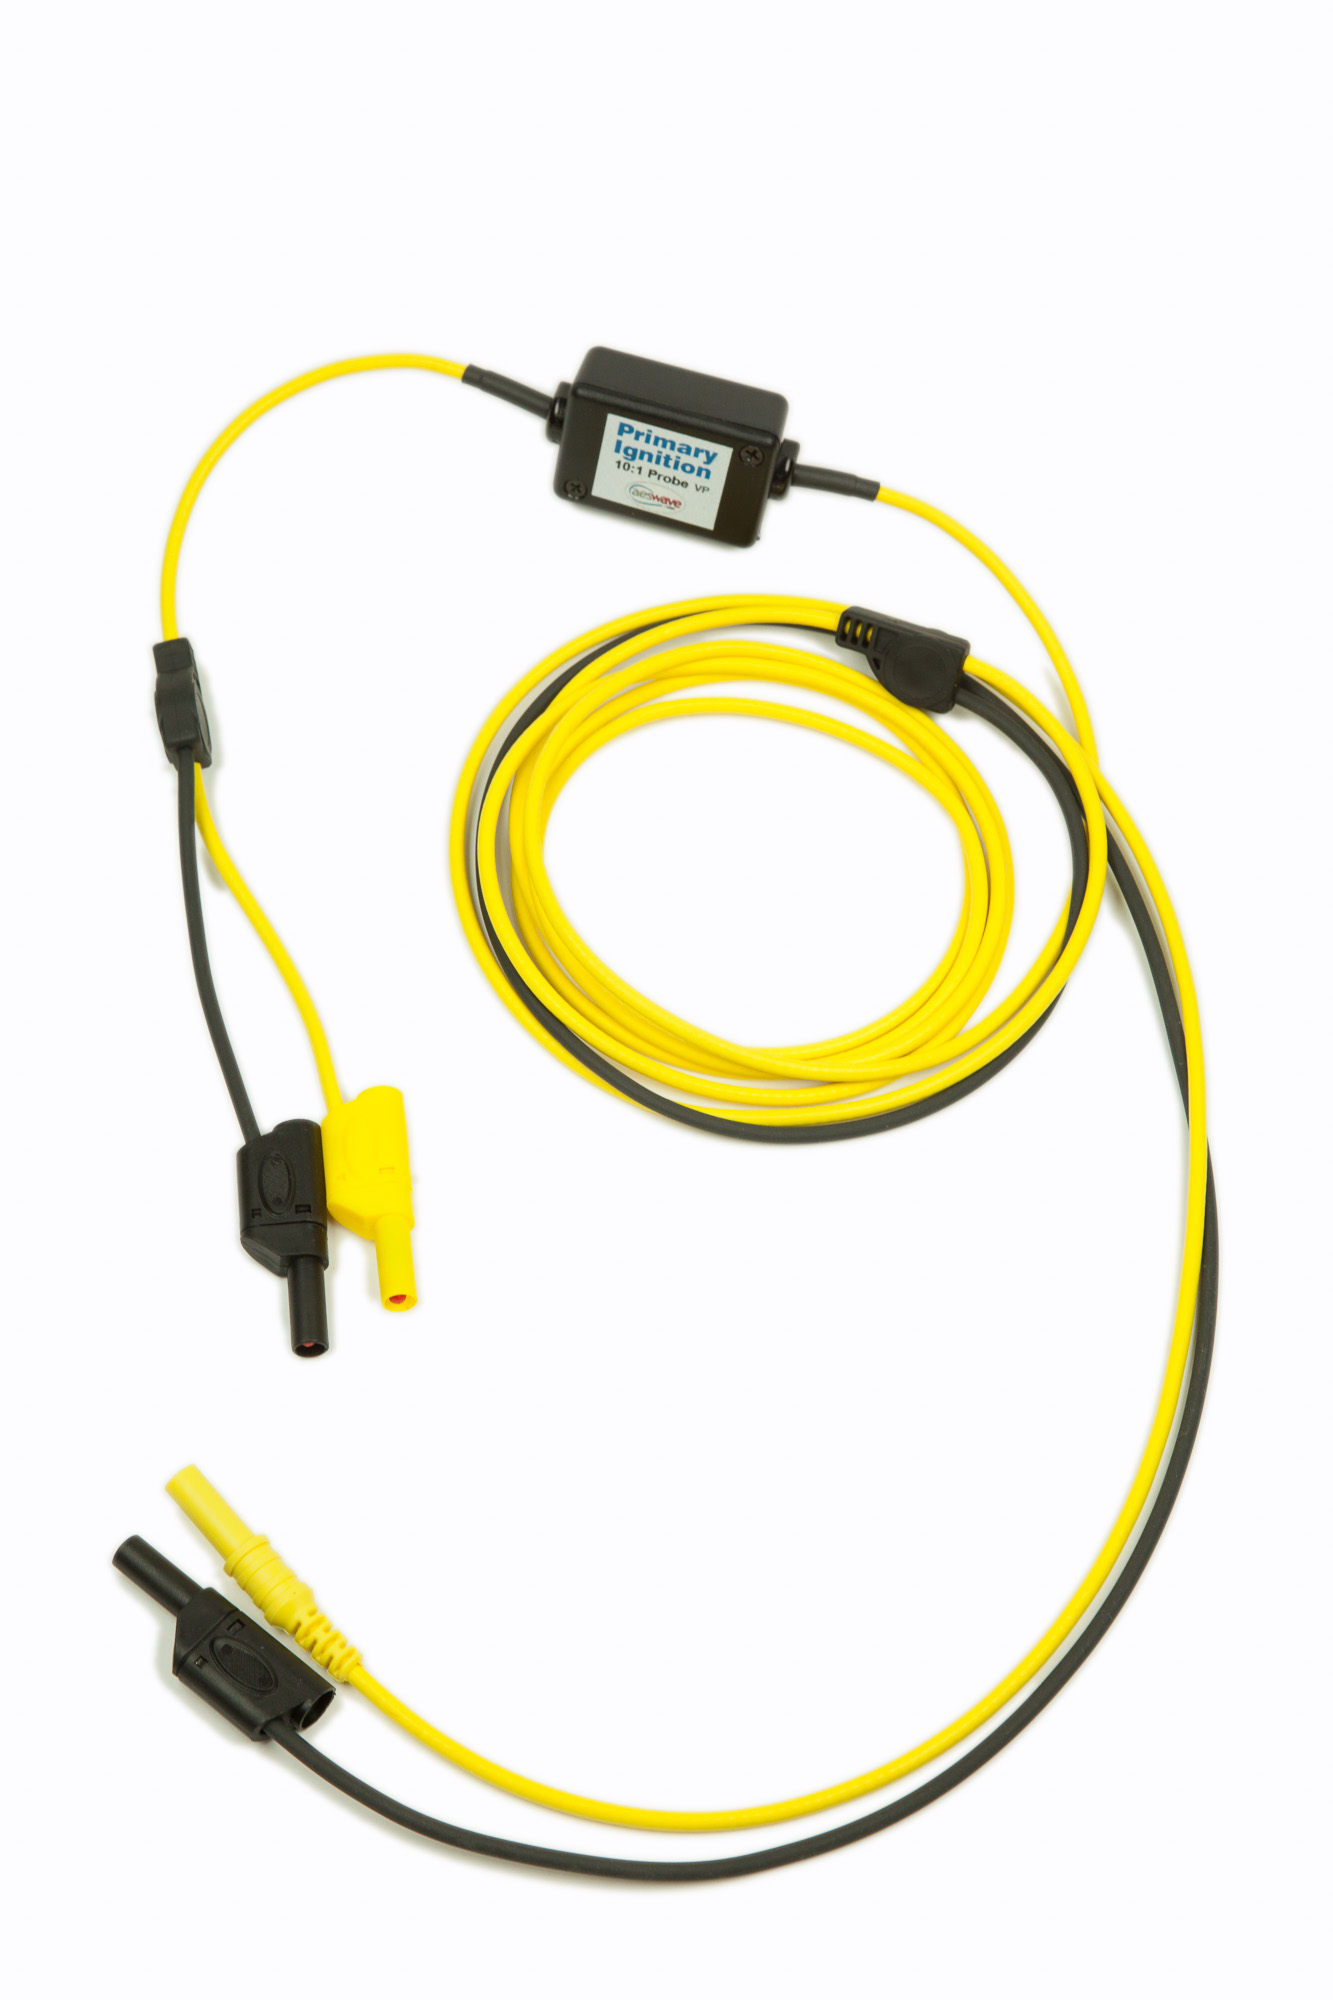 Primary Ignition Lead for Snap on MODIS VERUS VantagePRO